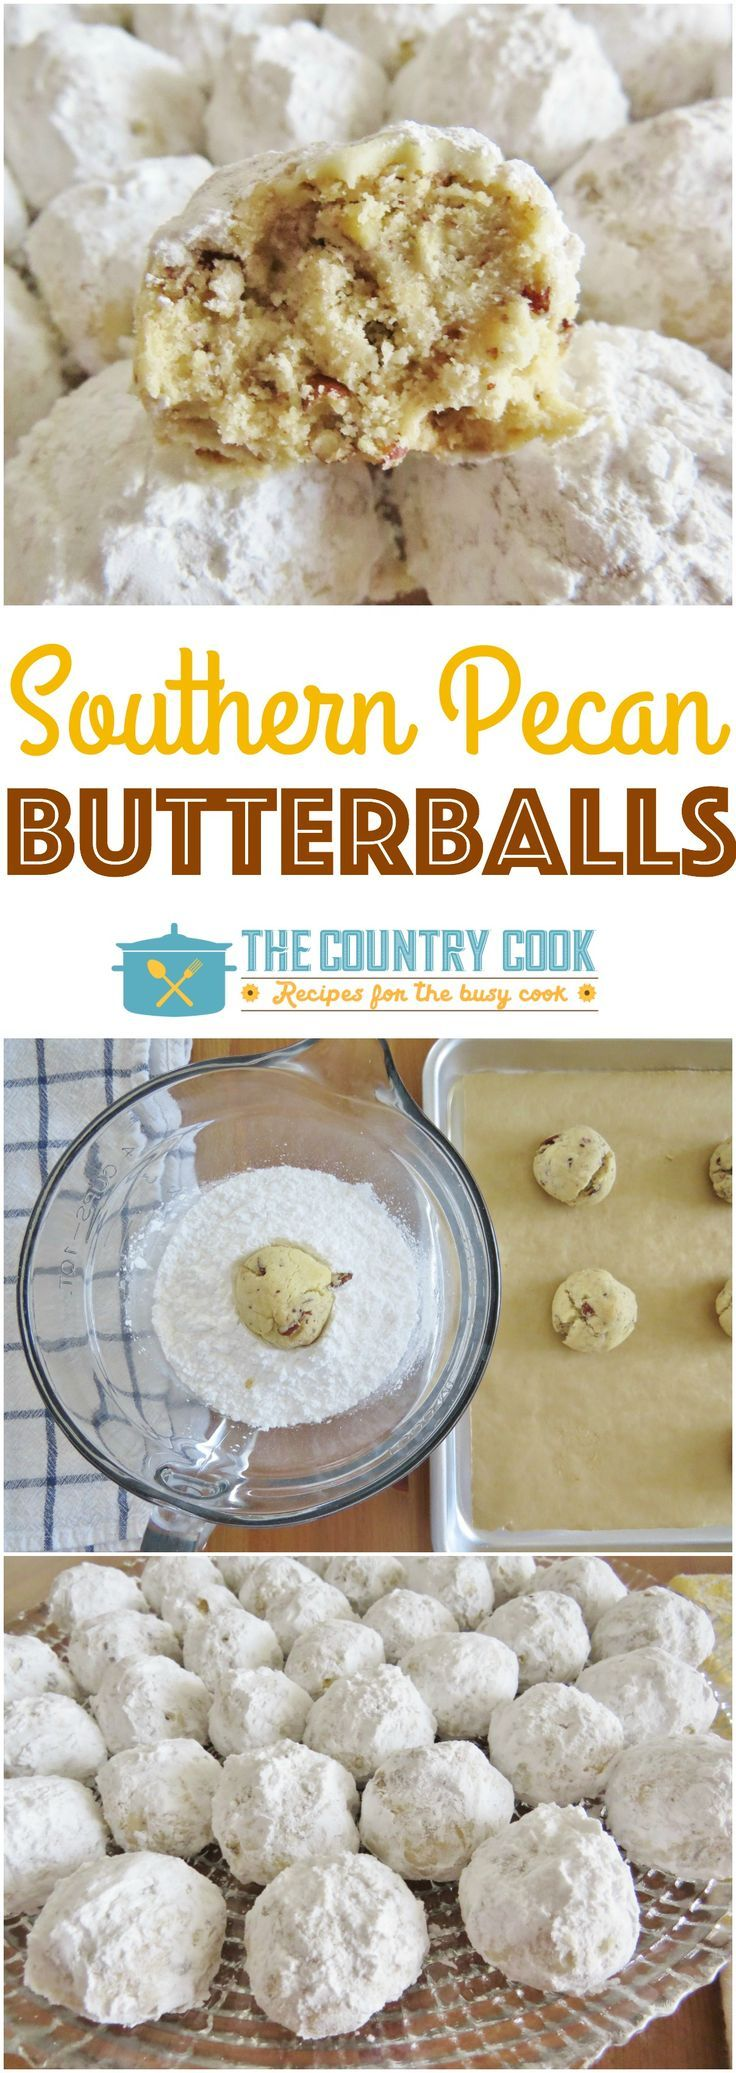 Southern Pecan Butterballs A Classic Cookie Thats Known By Many Names Snowball Cookies Mexican Wedding Russian Tea Cakes And Danish